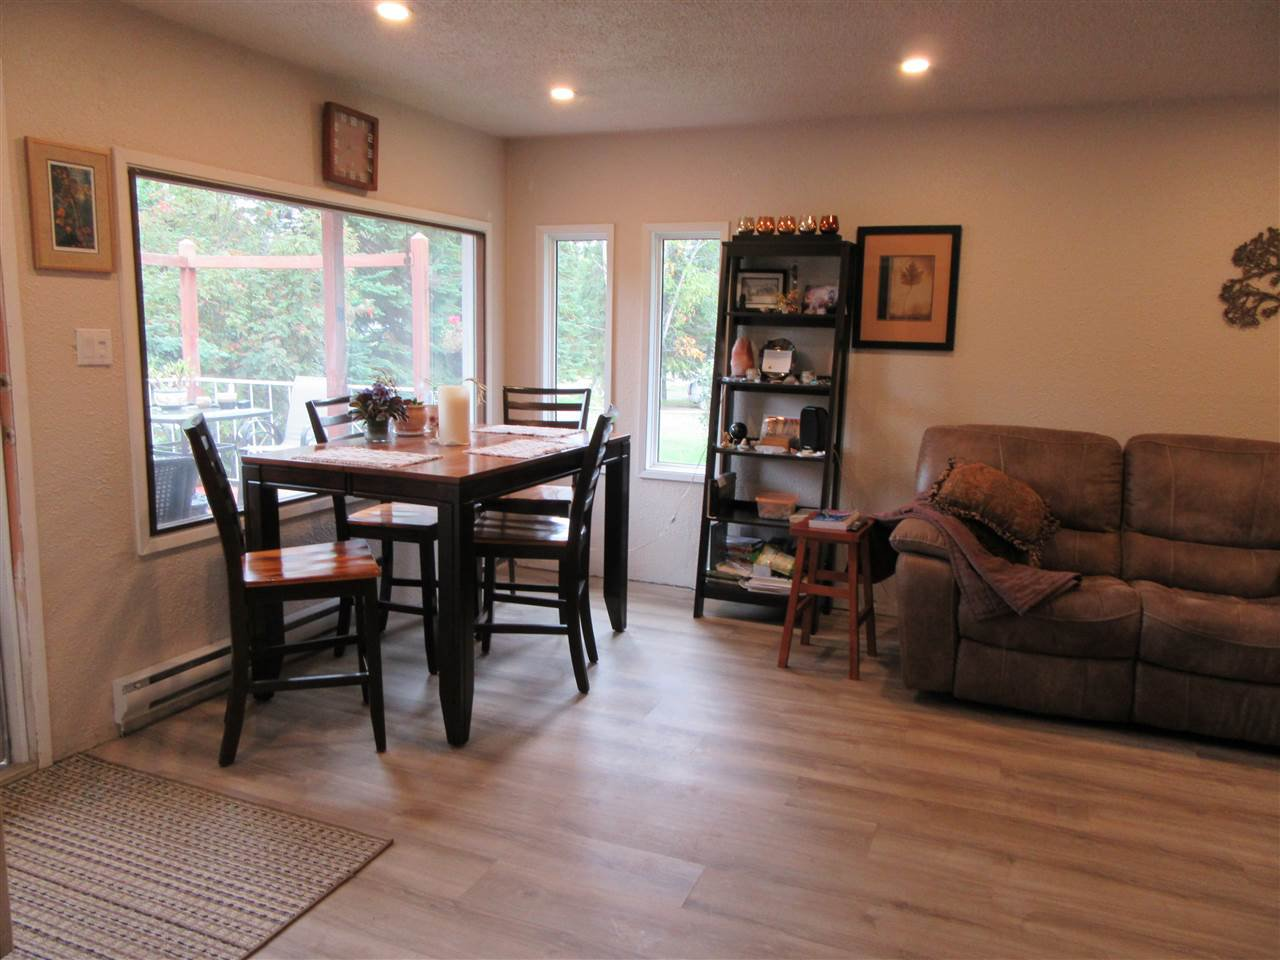 Photo 13: Photos: 4261 ARABIAN Road in Prince George: Emerald House for sale (PG City North (Zone 73))  : MLS®# R2404002